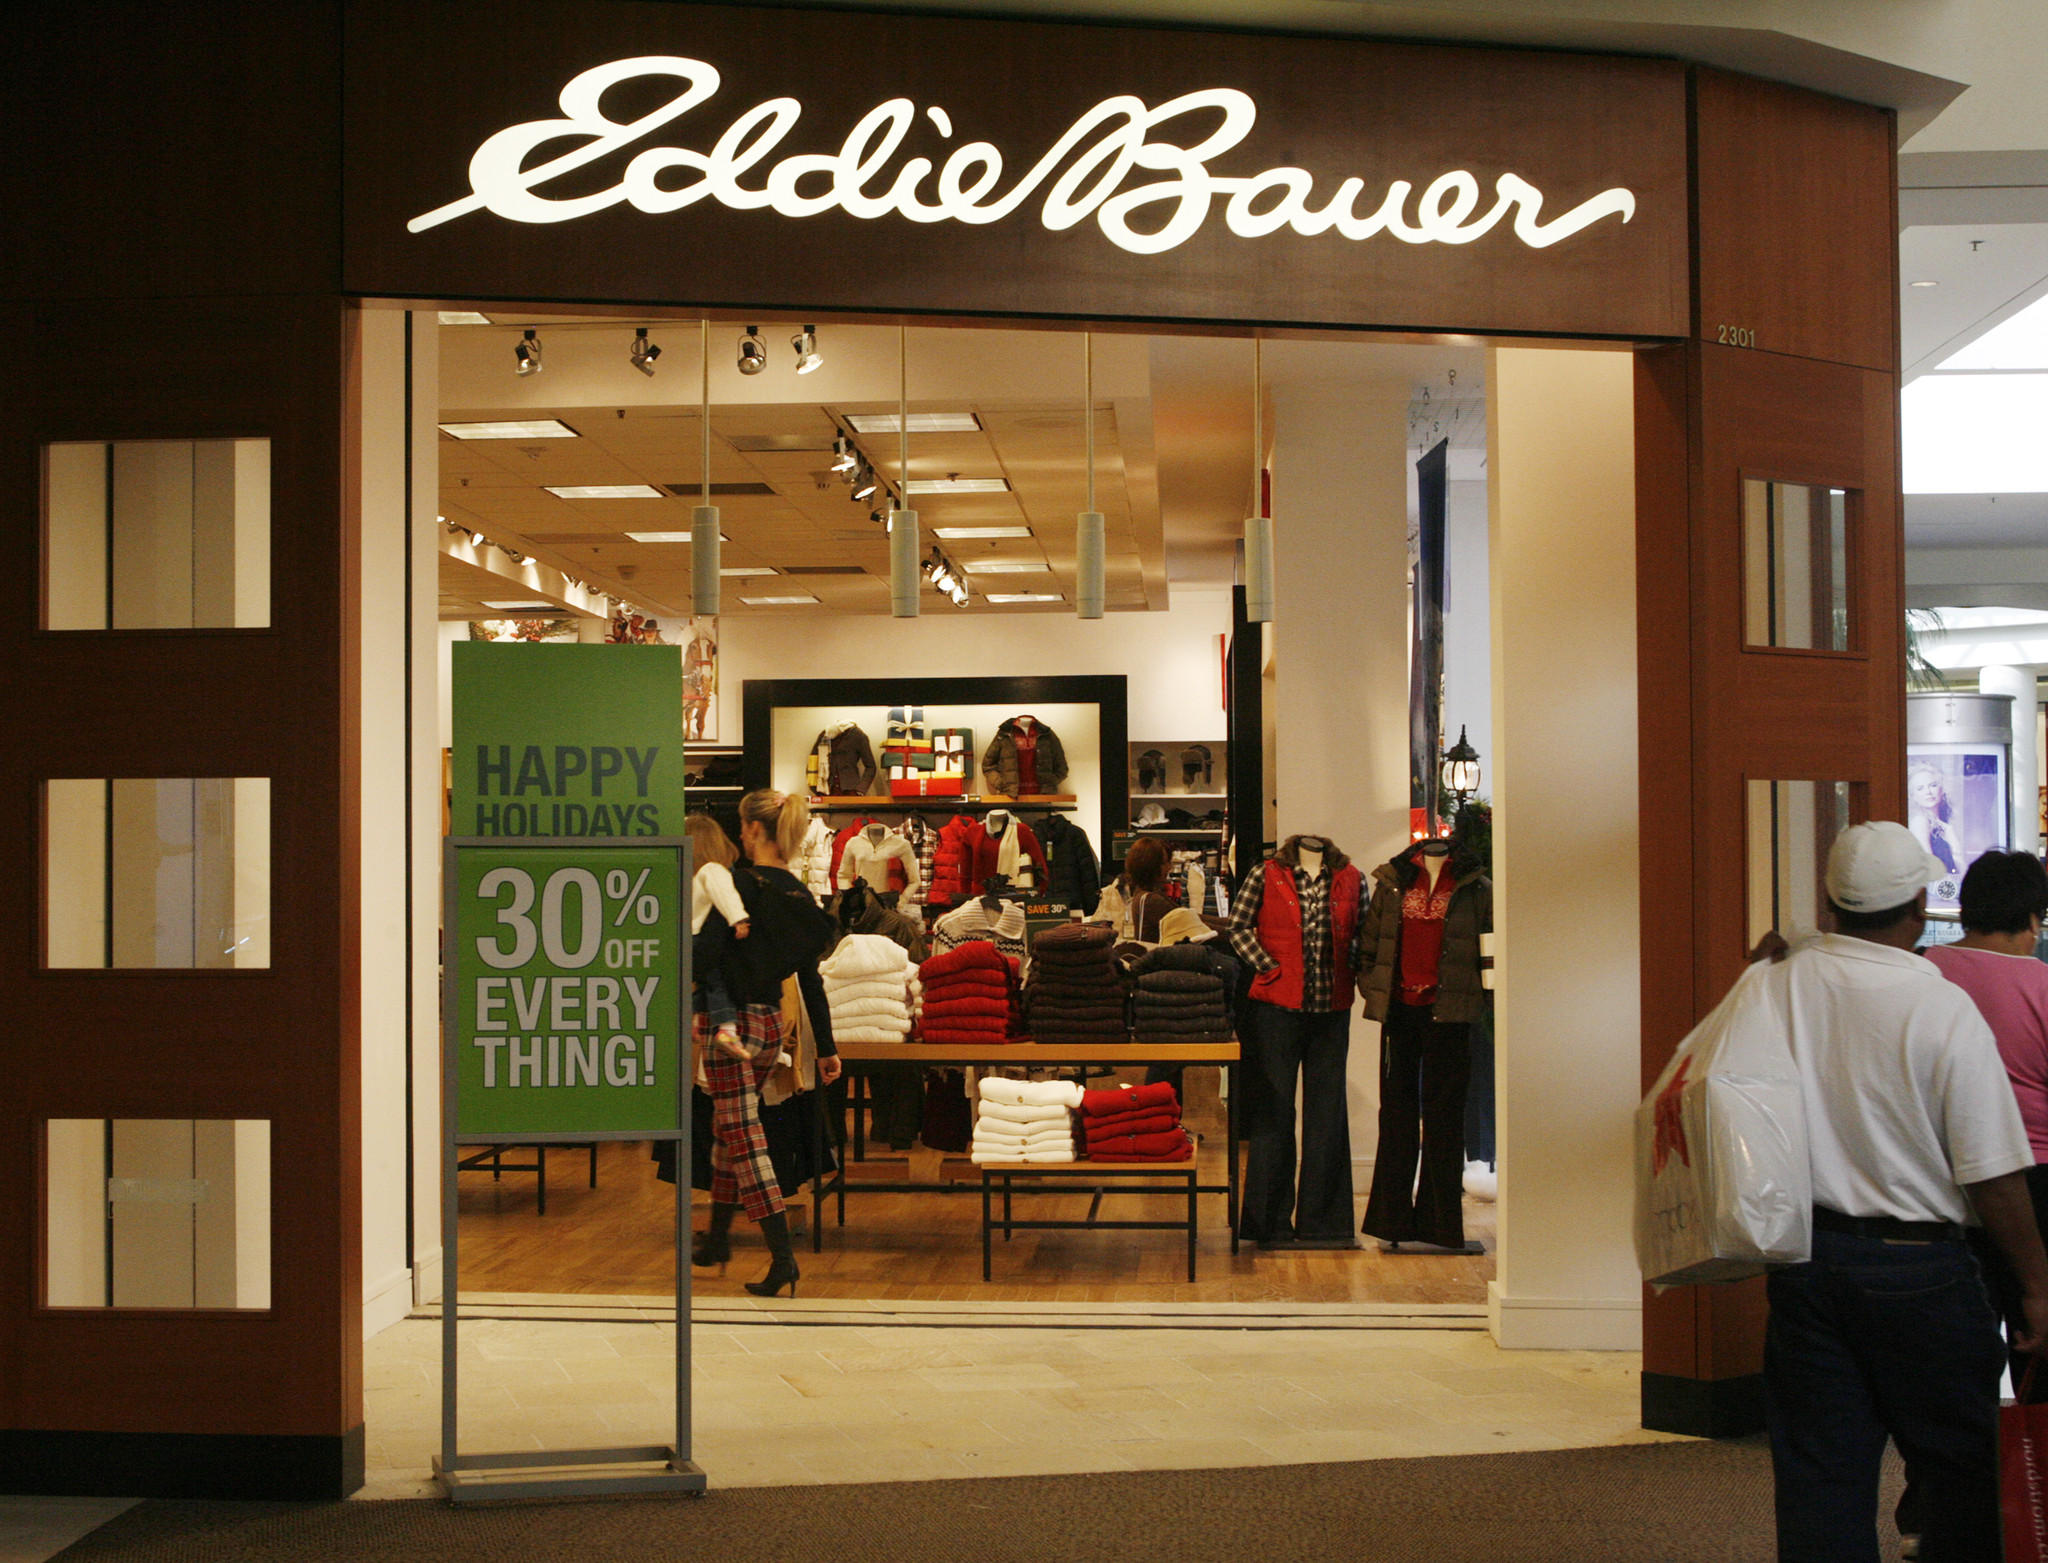 Eddie bauer coupons in store